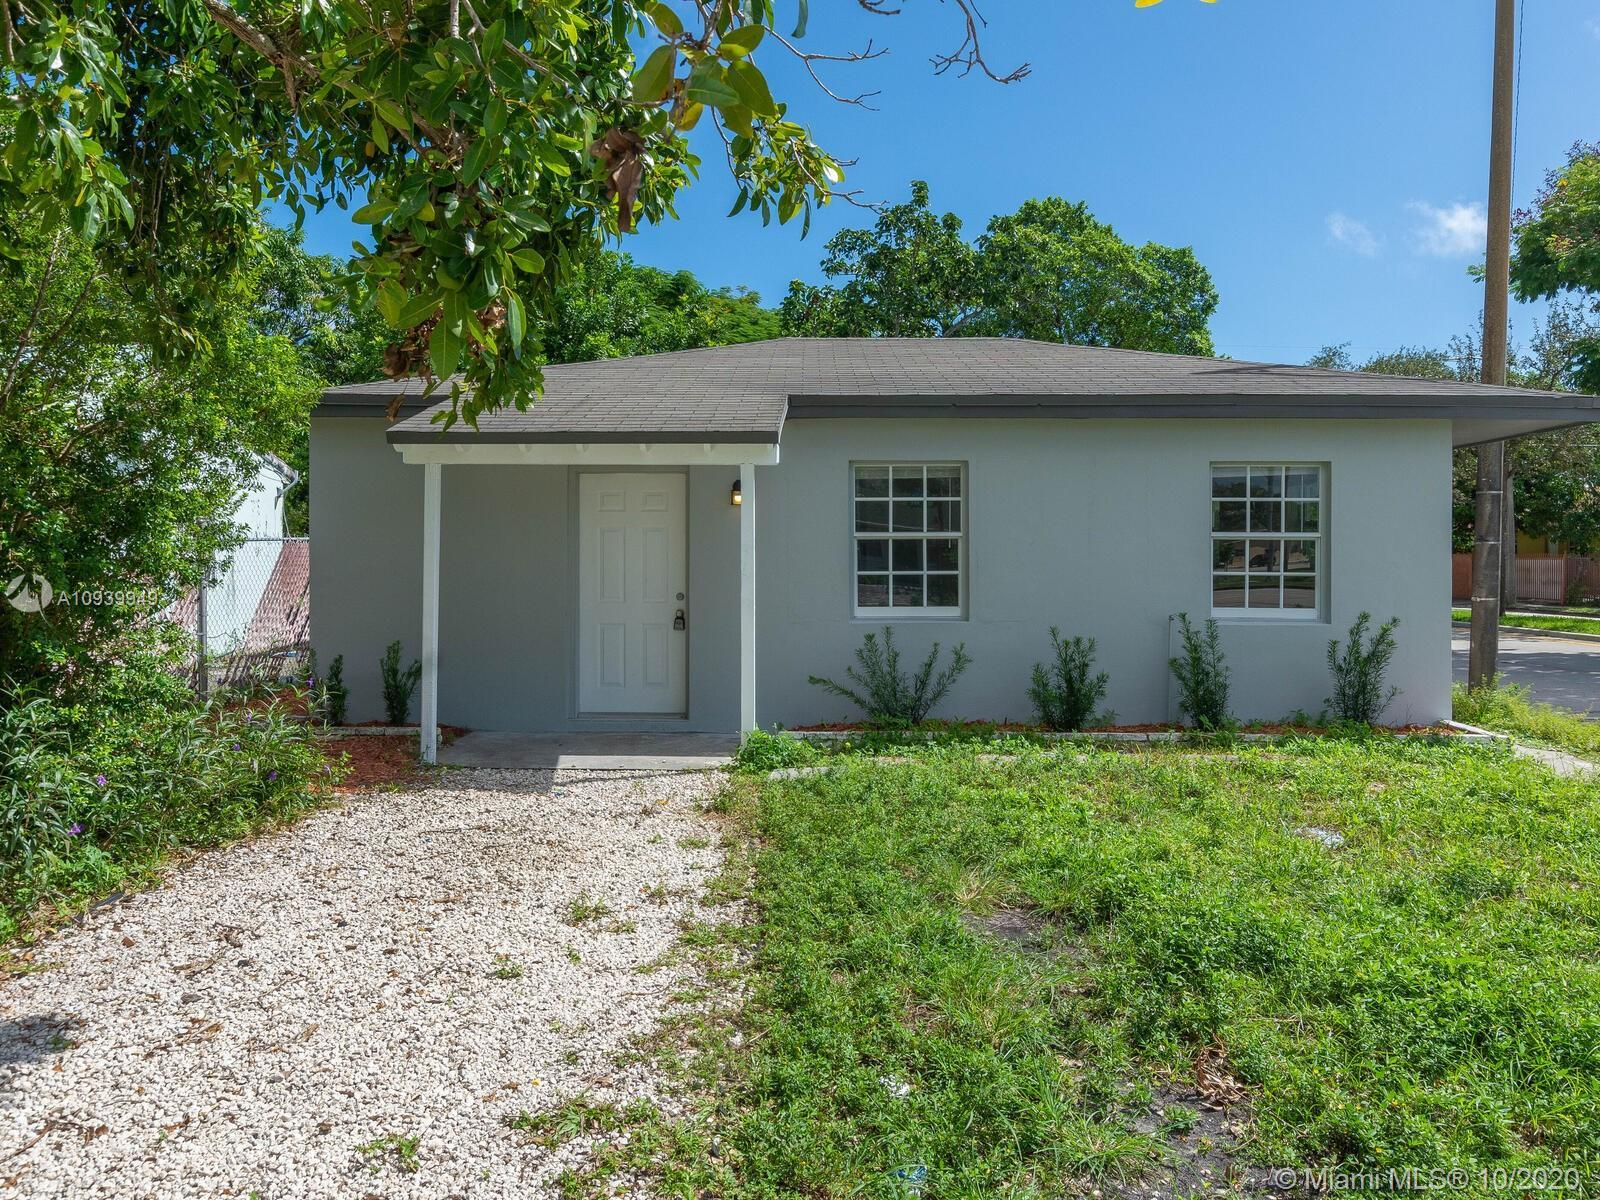 Check out this renovated 2/2 Beautiful home in a very desirable area. Brand New appliances with thei